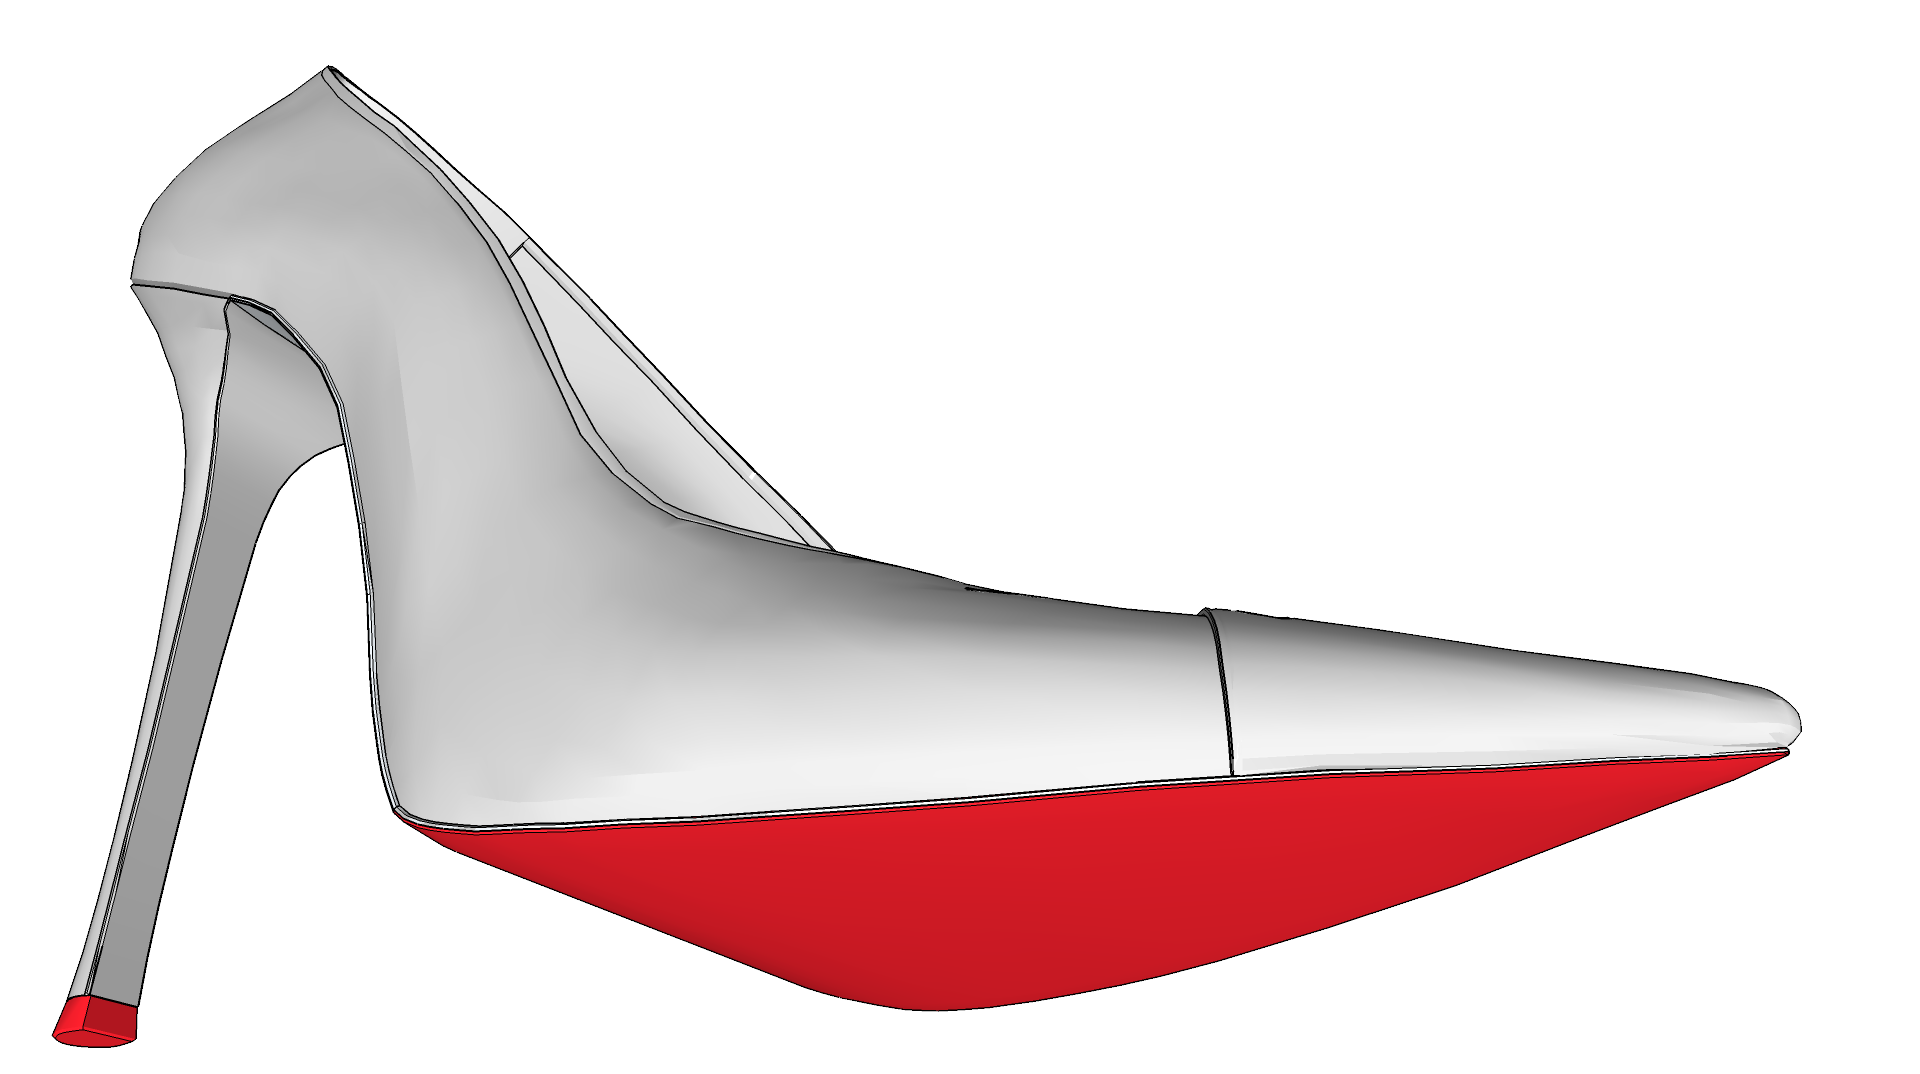 Heels clipart insole. High soles my shoe